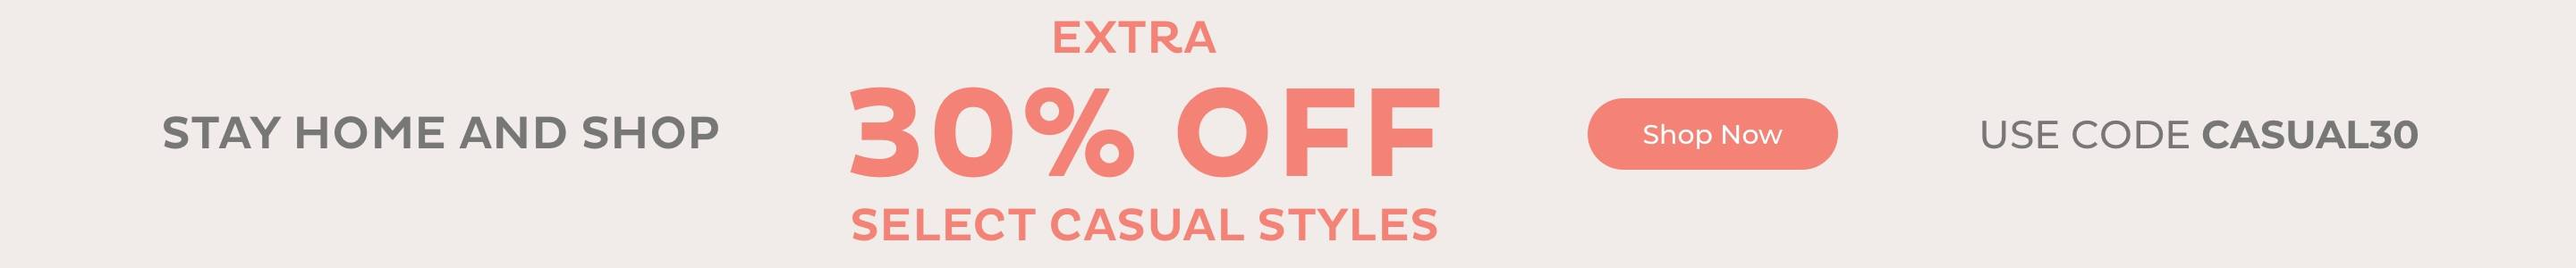 Extra 30% Off Select Casual Styles